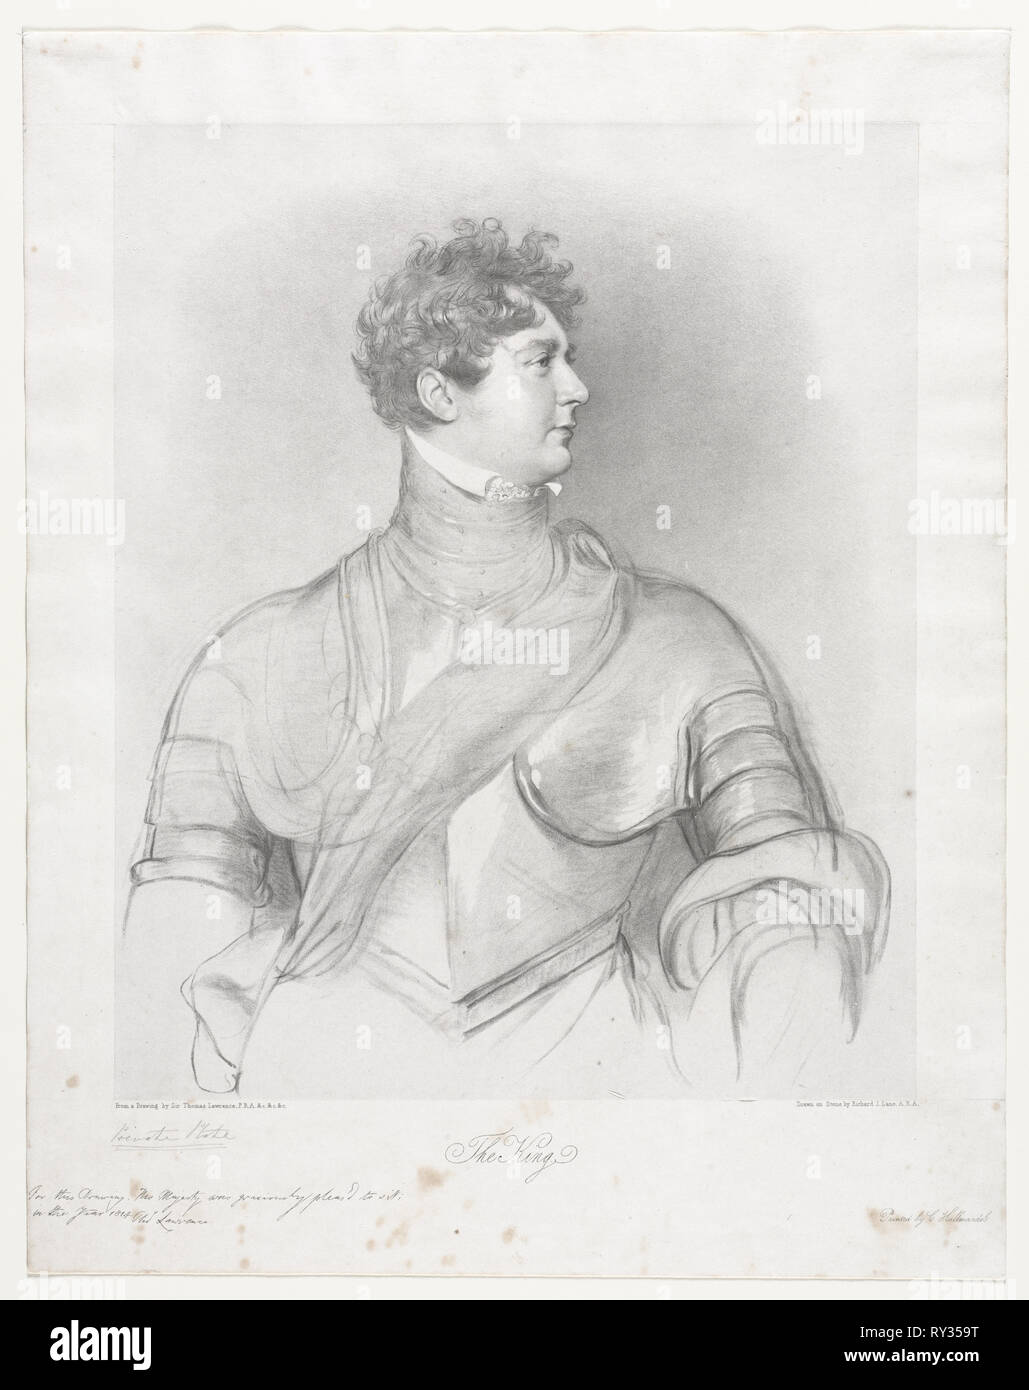 The King, George IV of Great Britain. Richard James Lane (British, 1800-1872). Lithograph - Stock Image